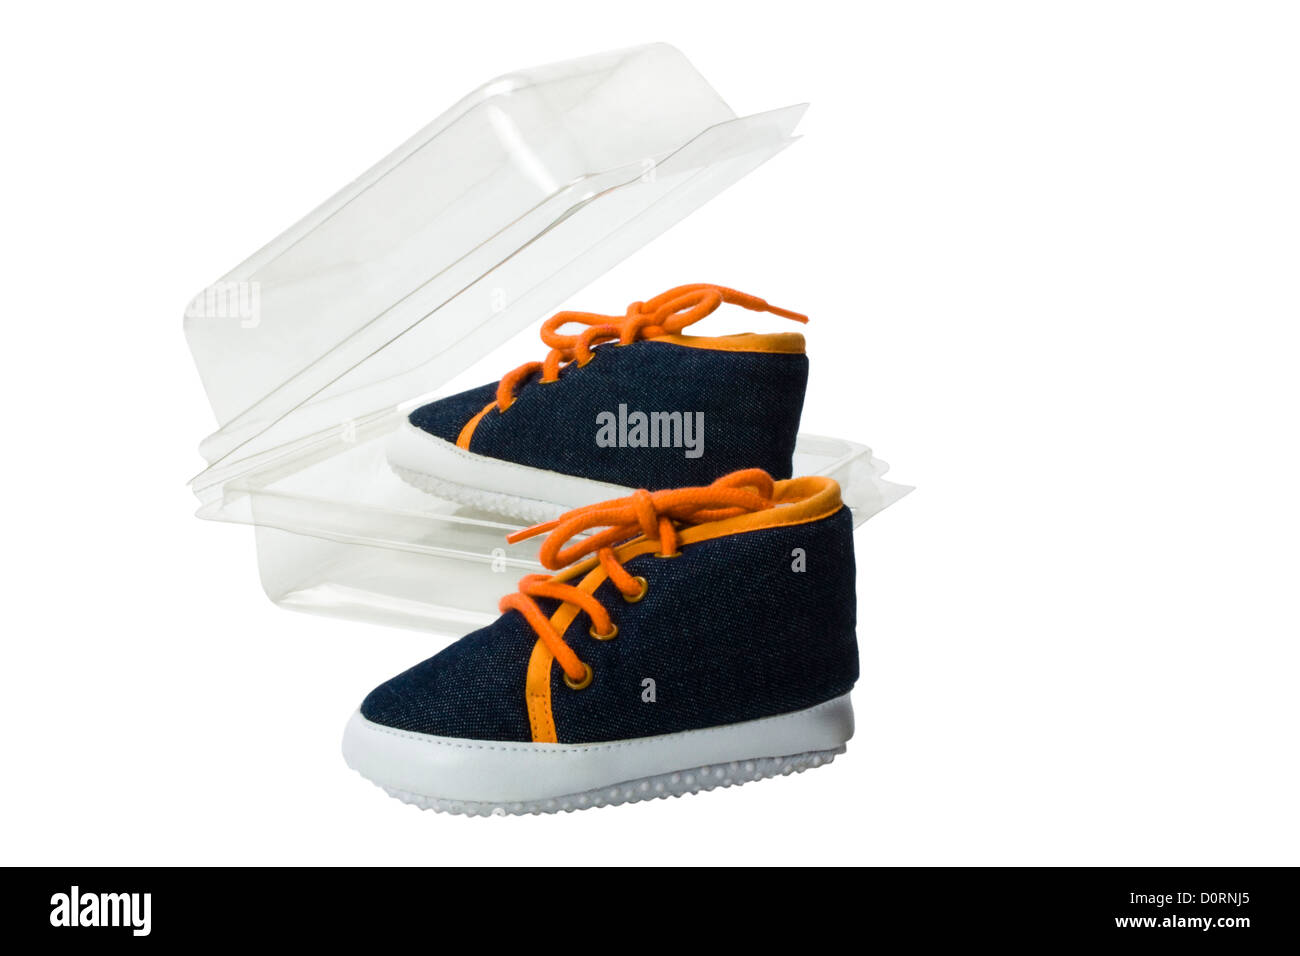 Images Box amp; Photos Alamy Shoe Sports xIqvwTv